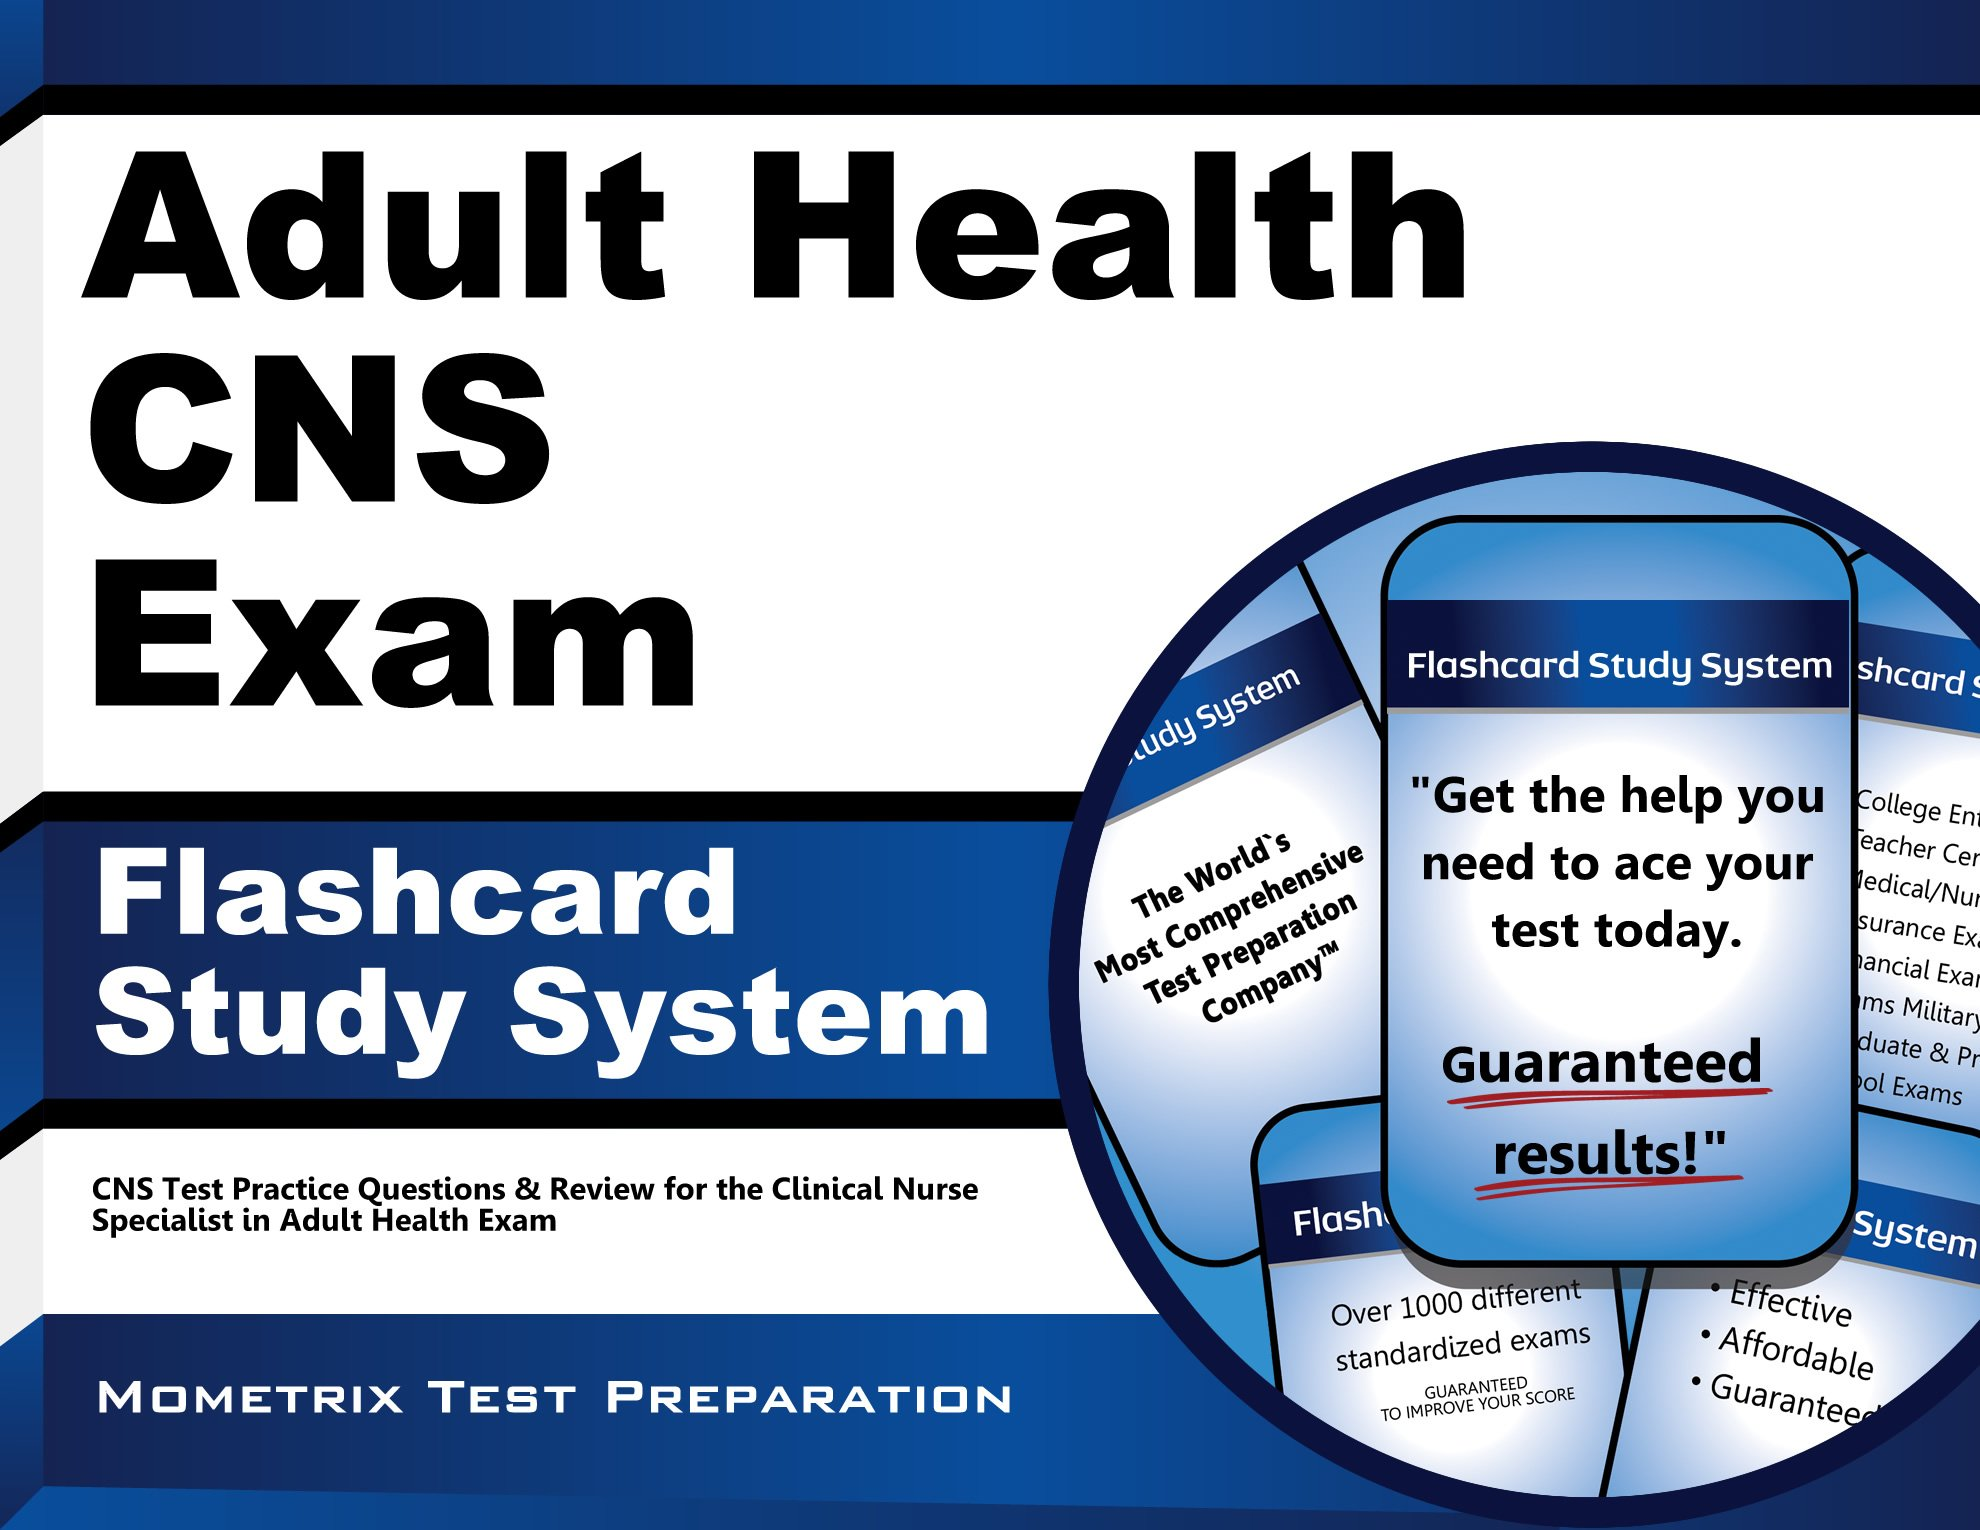 Adult Health CNS Exam Flashcard Study System: CNS Test Practice Questions & Review for the Clinical Nurse Specialist in Adult Health Exam pdf